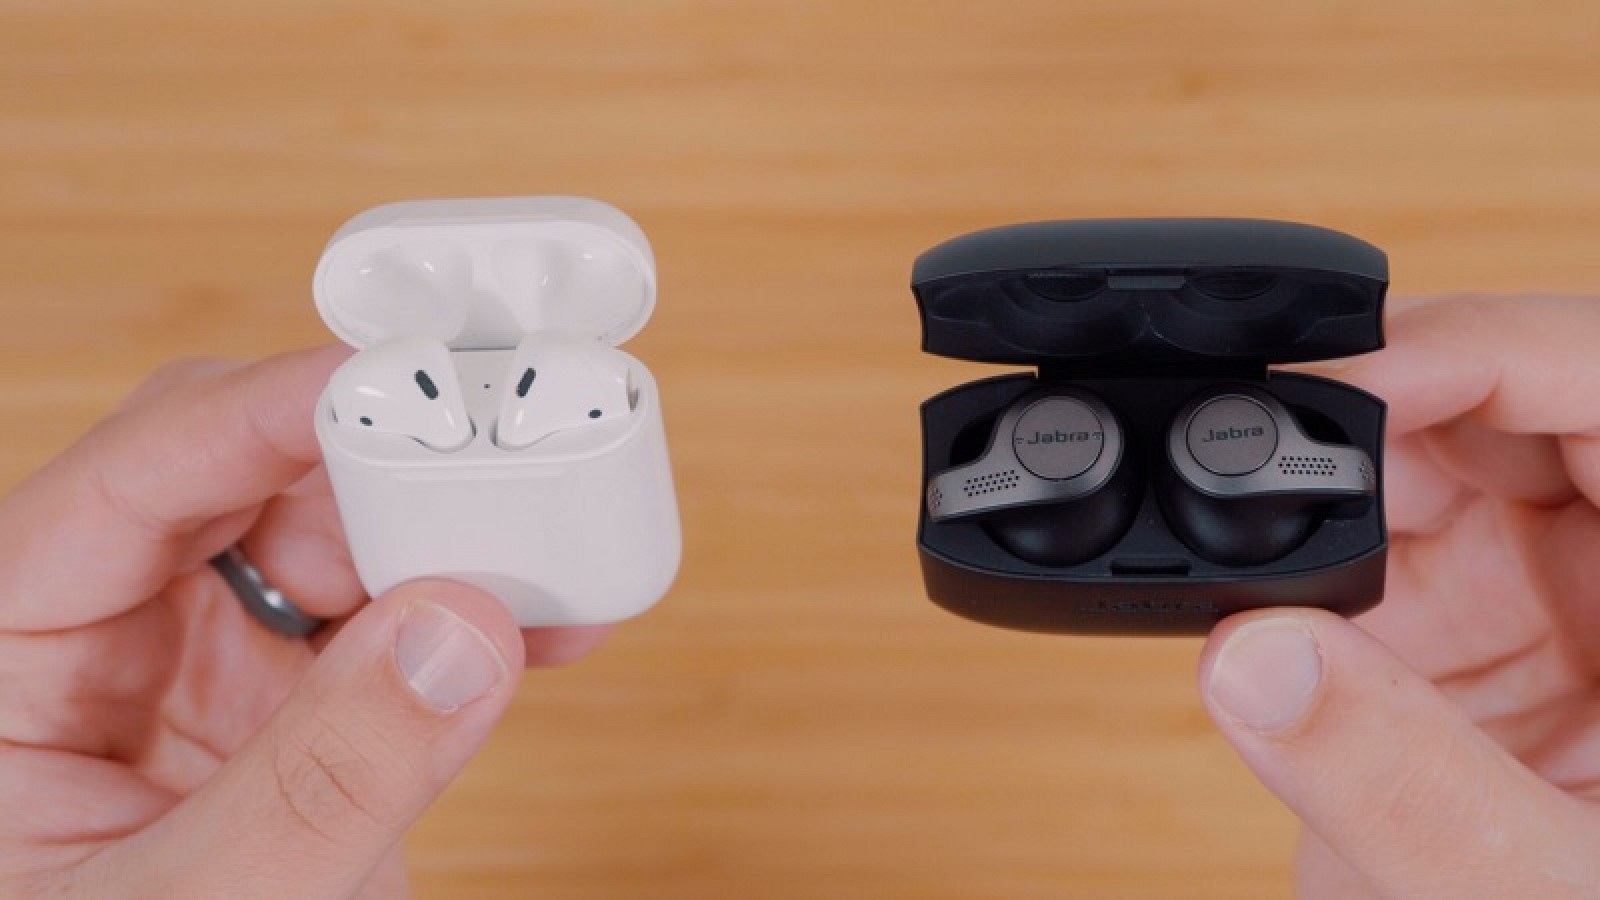 5df38f2d19d Apple's AirPods vs. Jabra's Elite 65t Wire-Free Earbuds - MacRumors